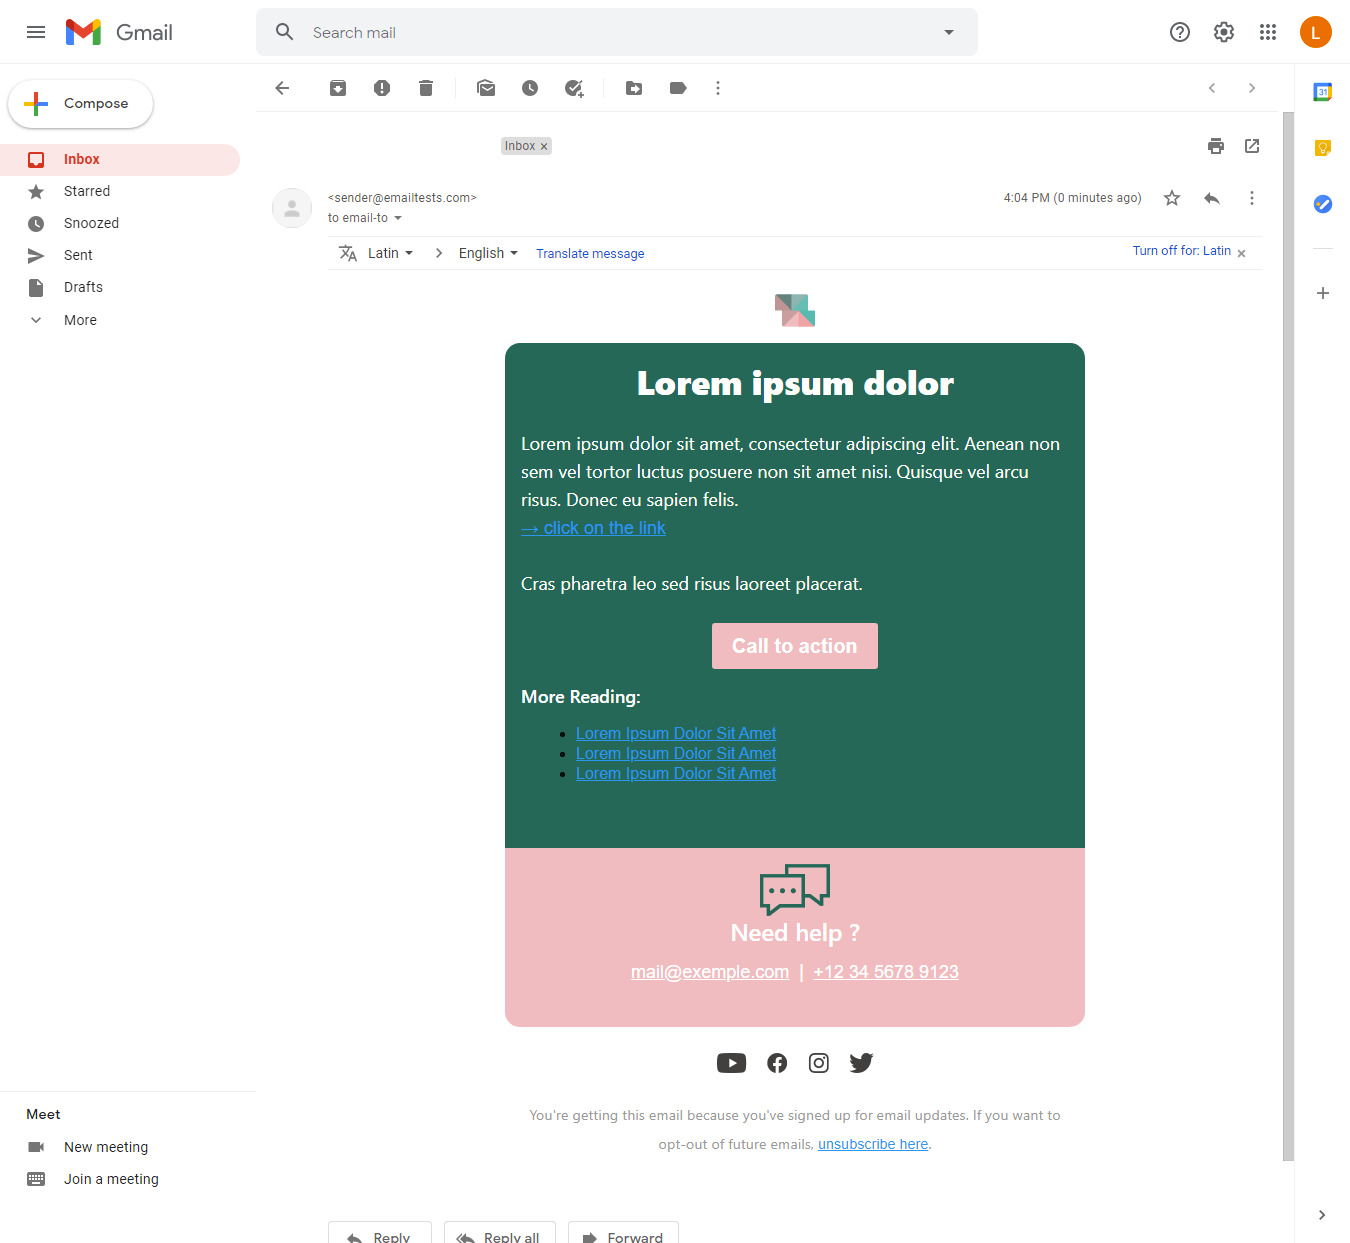 Screenshot of Colorful account information email display on Gmail